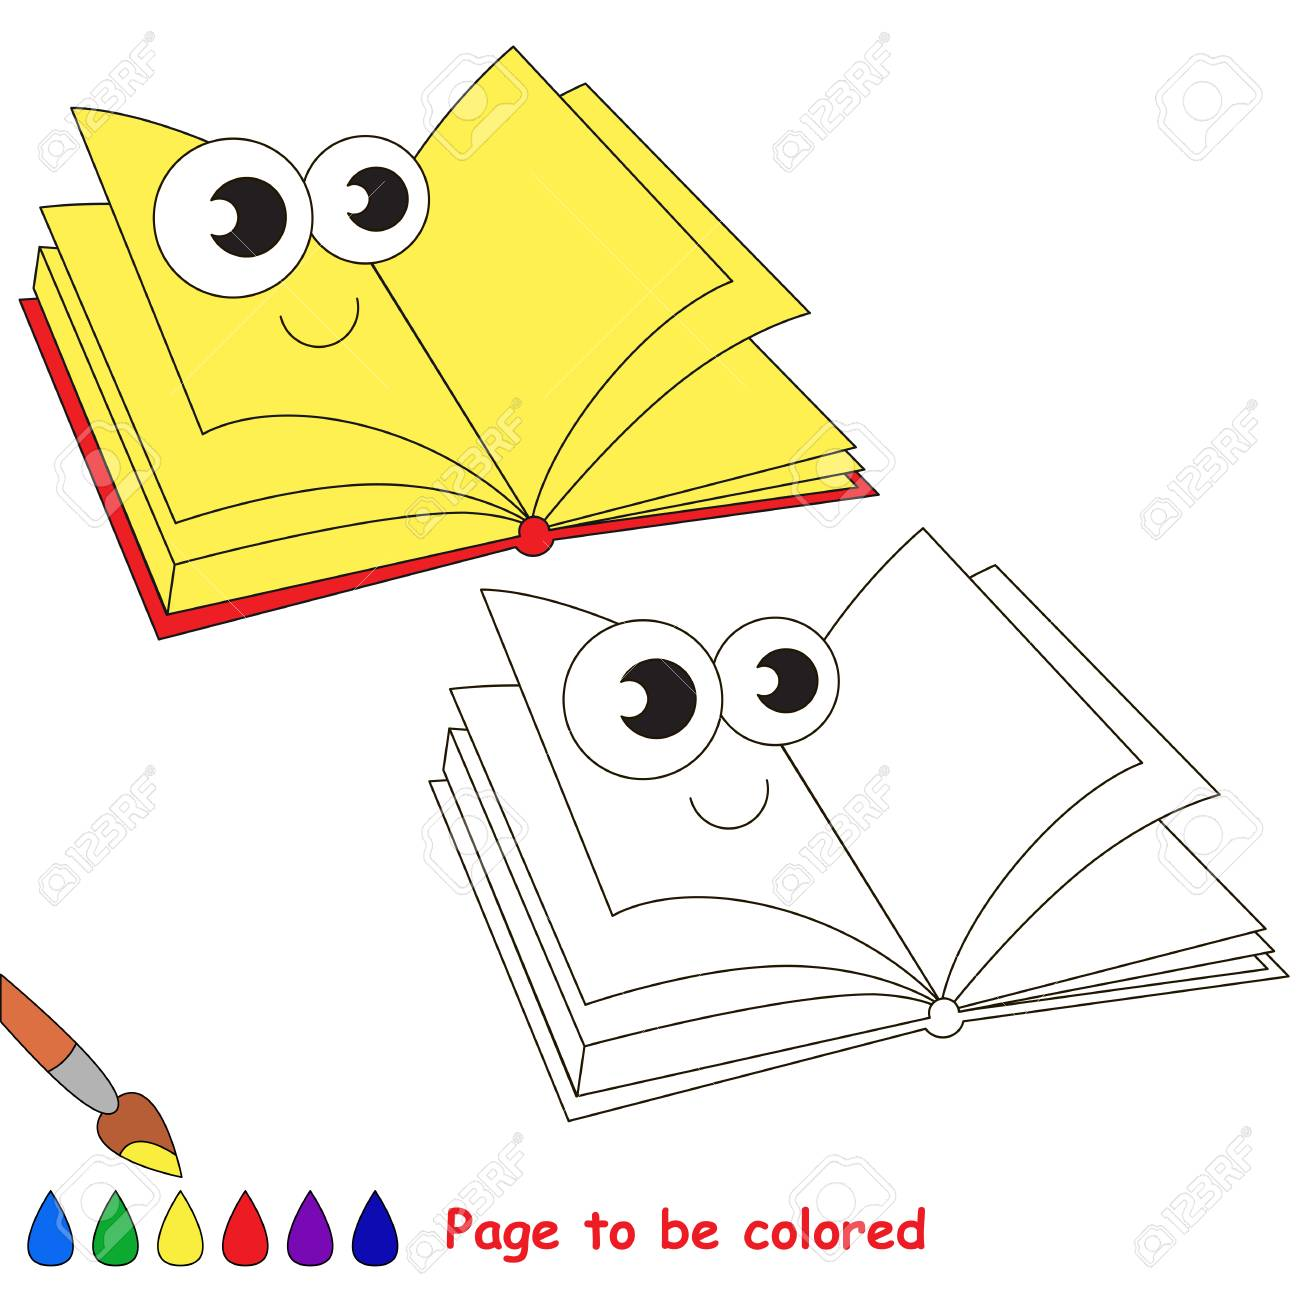 Notebook to be colored. Coloring book to educate kids. Learn..